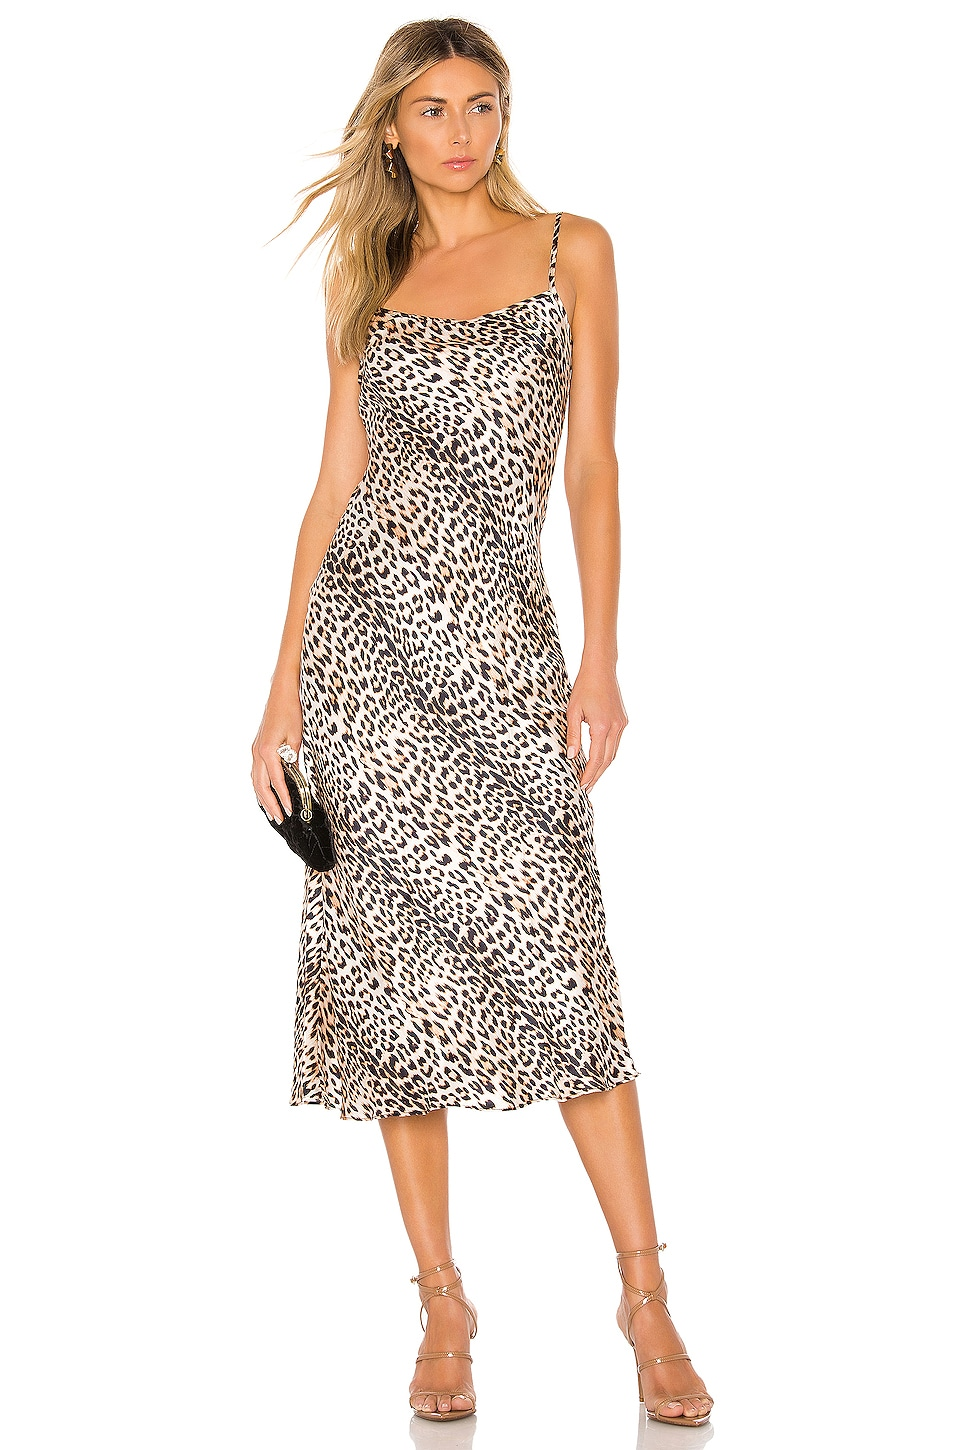 BEC&BRIDGE Feline Silk Midi Dress in Leopard Print